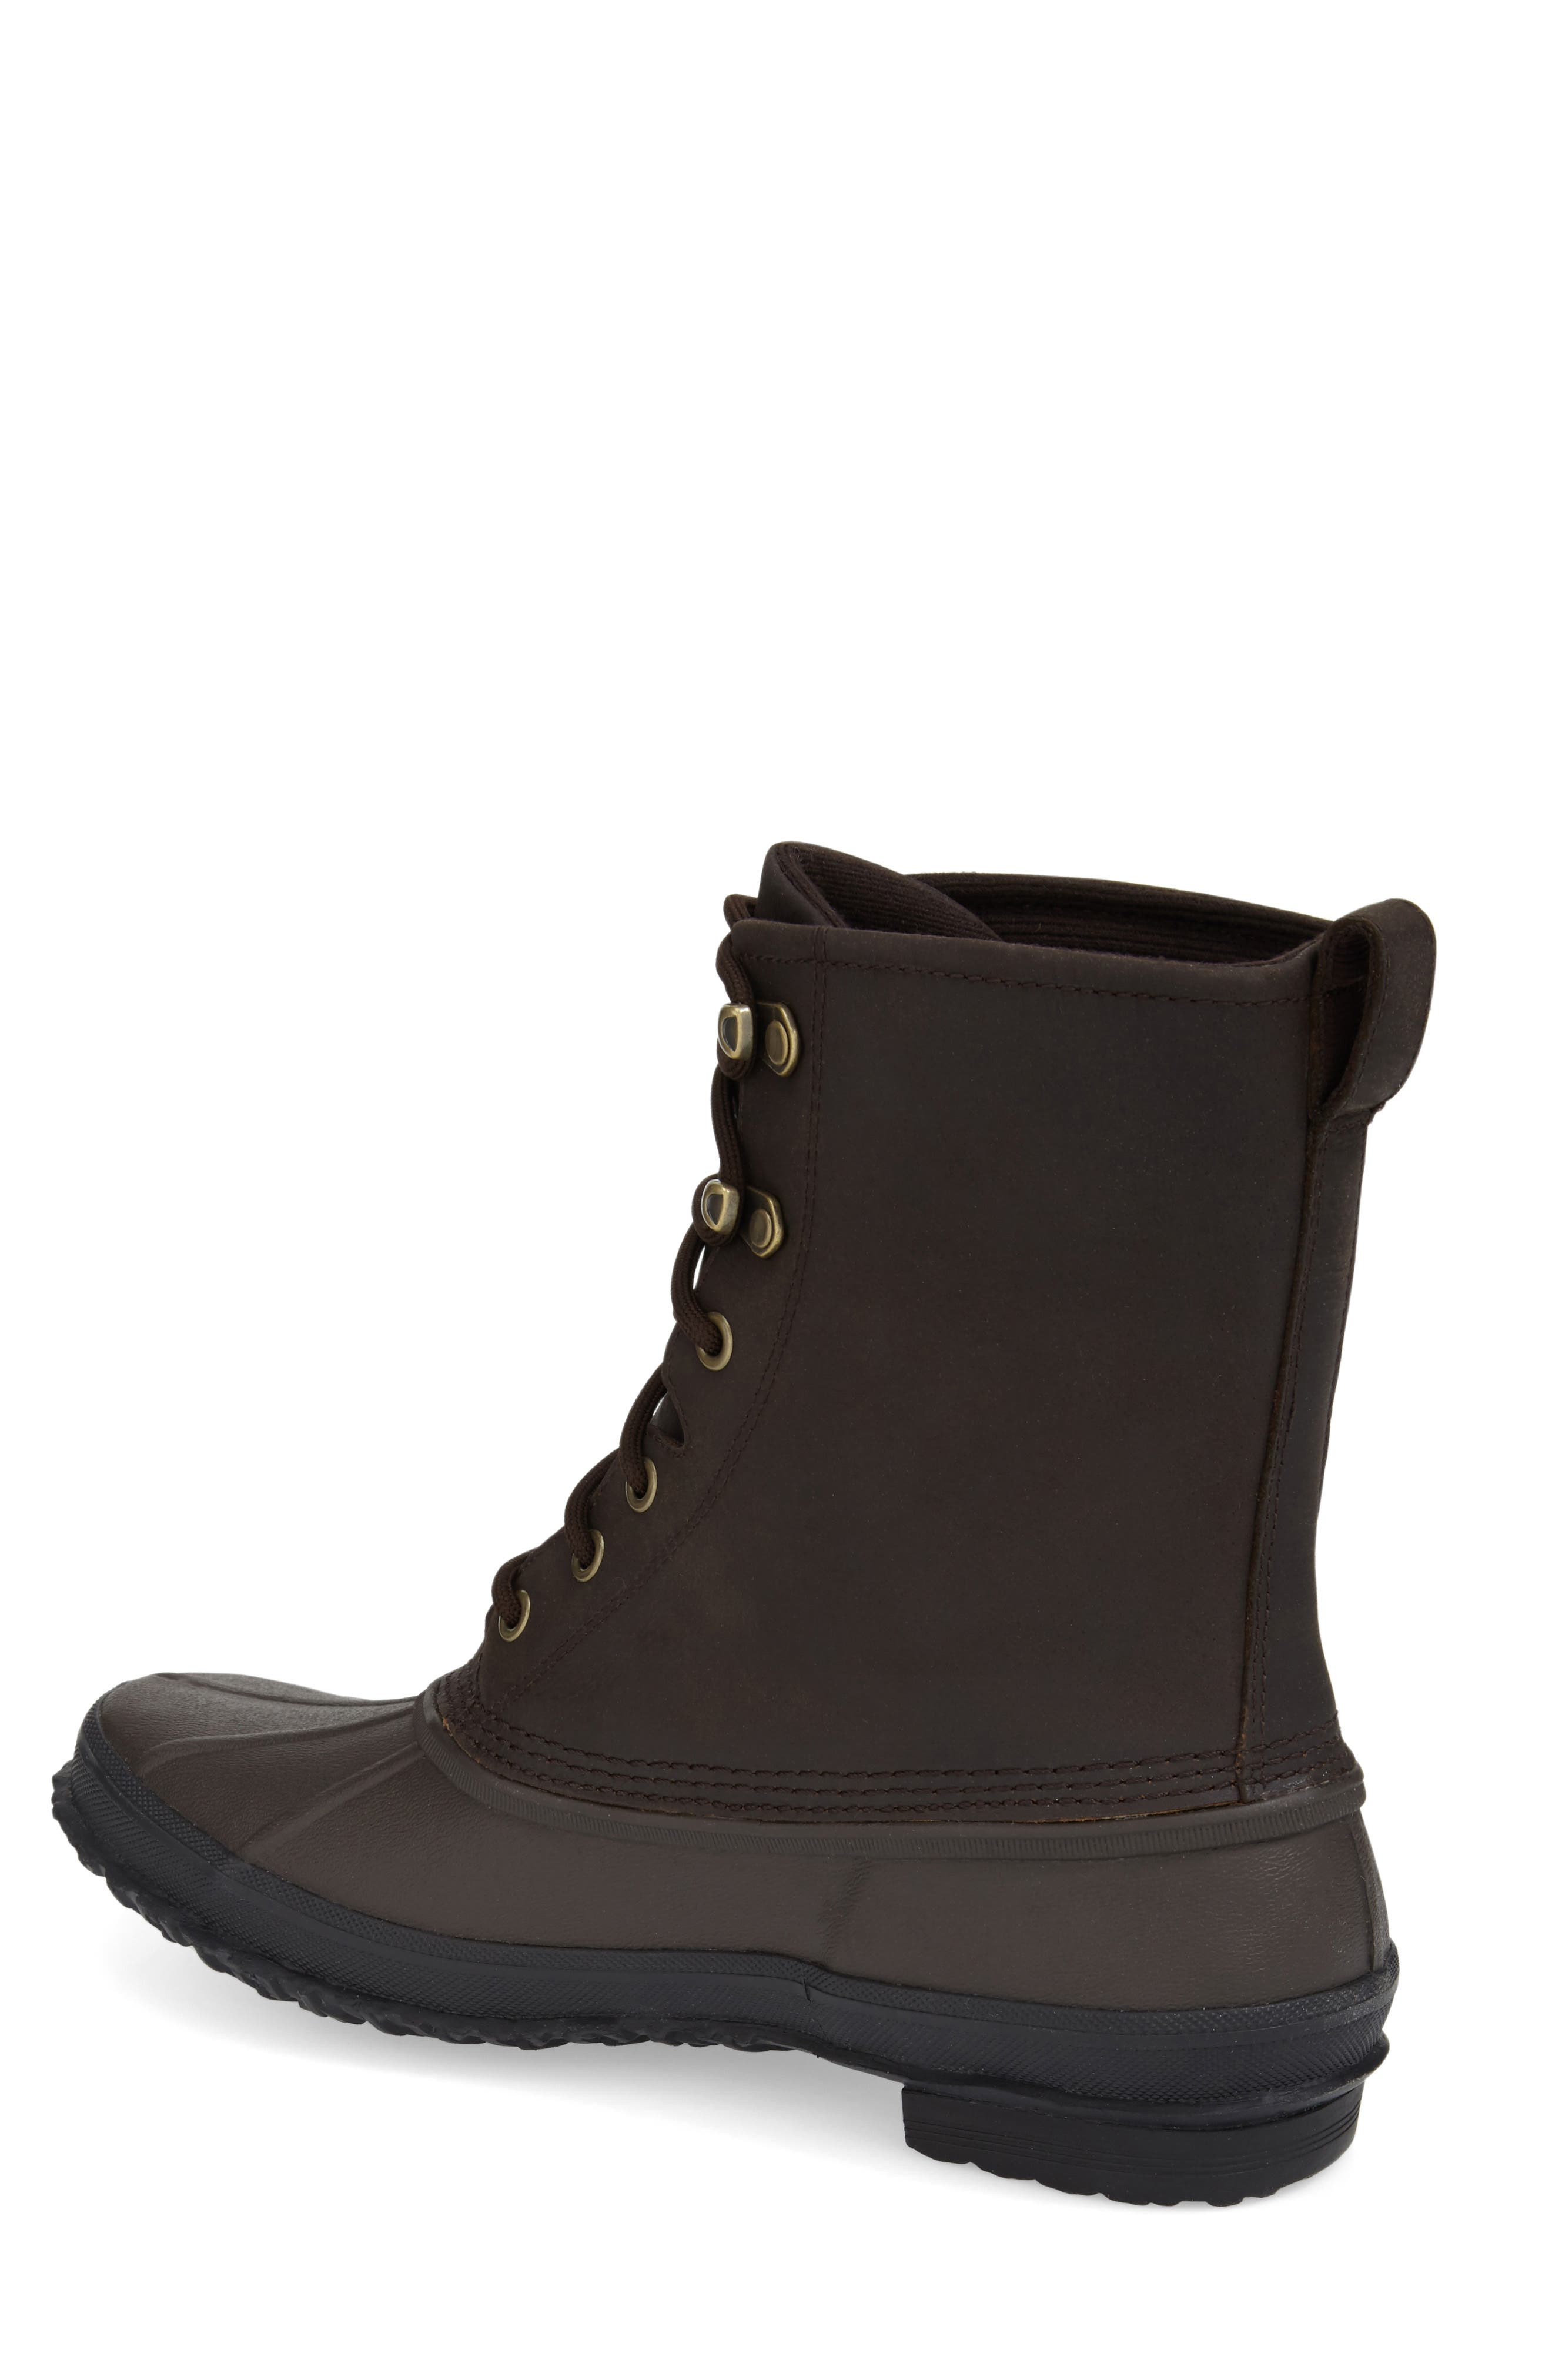 Yucca Rain Boot,                             Alternate thumbnail 4, color,                             STOUT